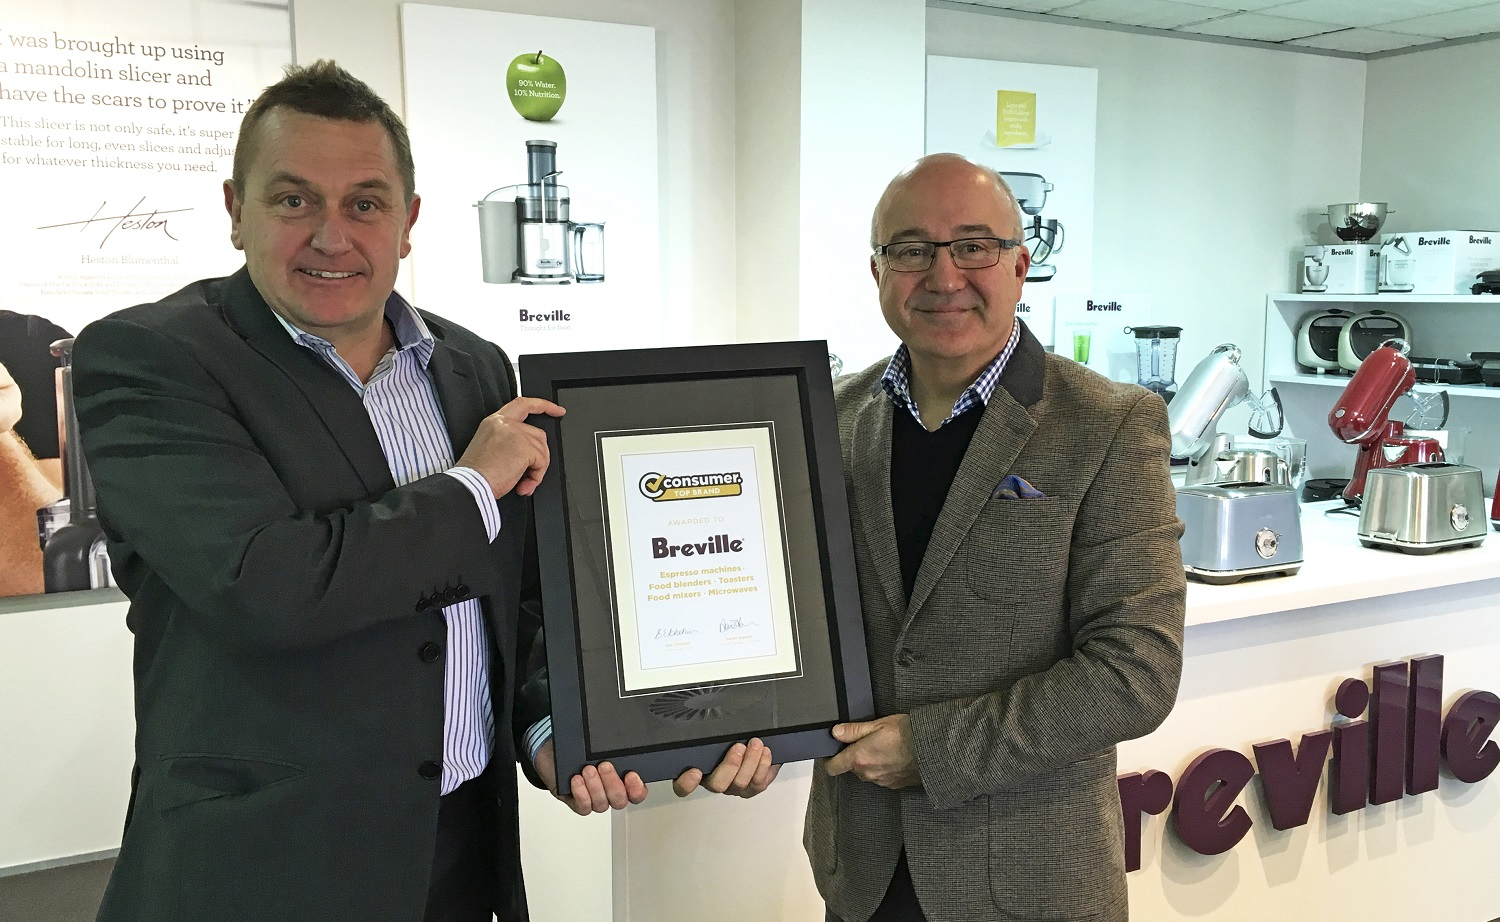 (Above: Derek Bonnar from Consumer presents Brett O'Neill with Breville's Consumer Top Brand Awards.)